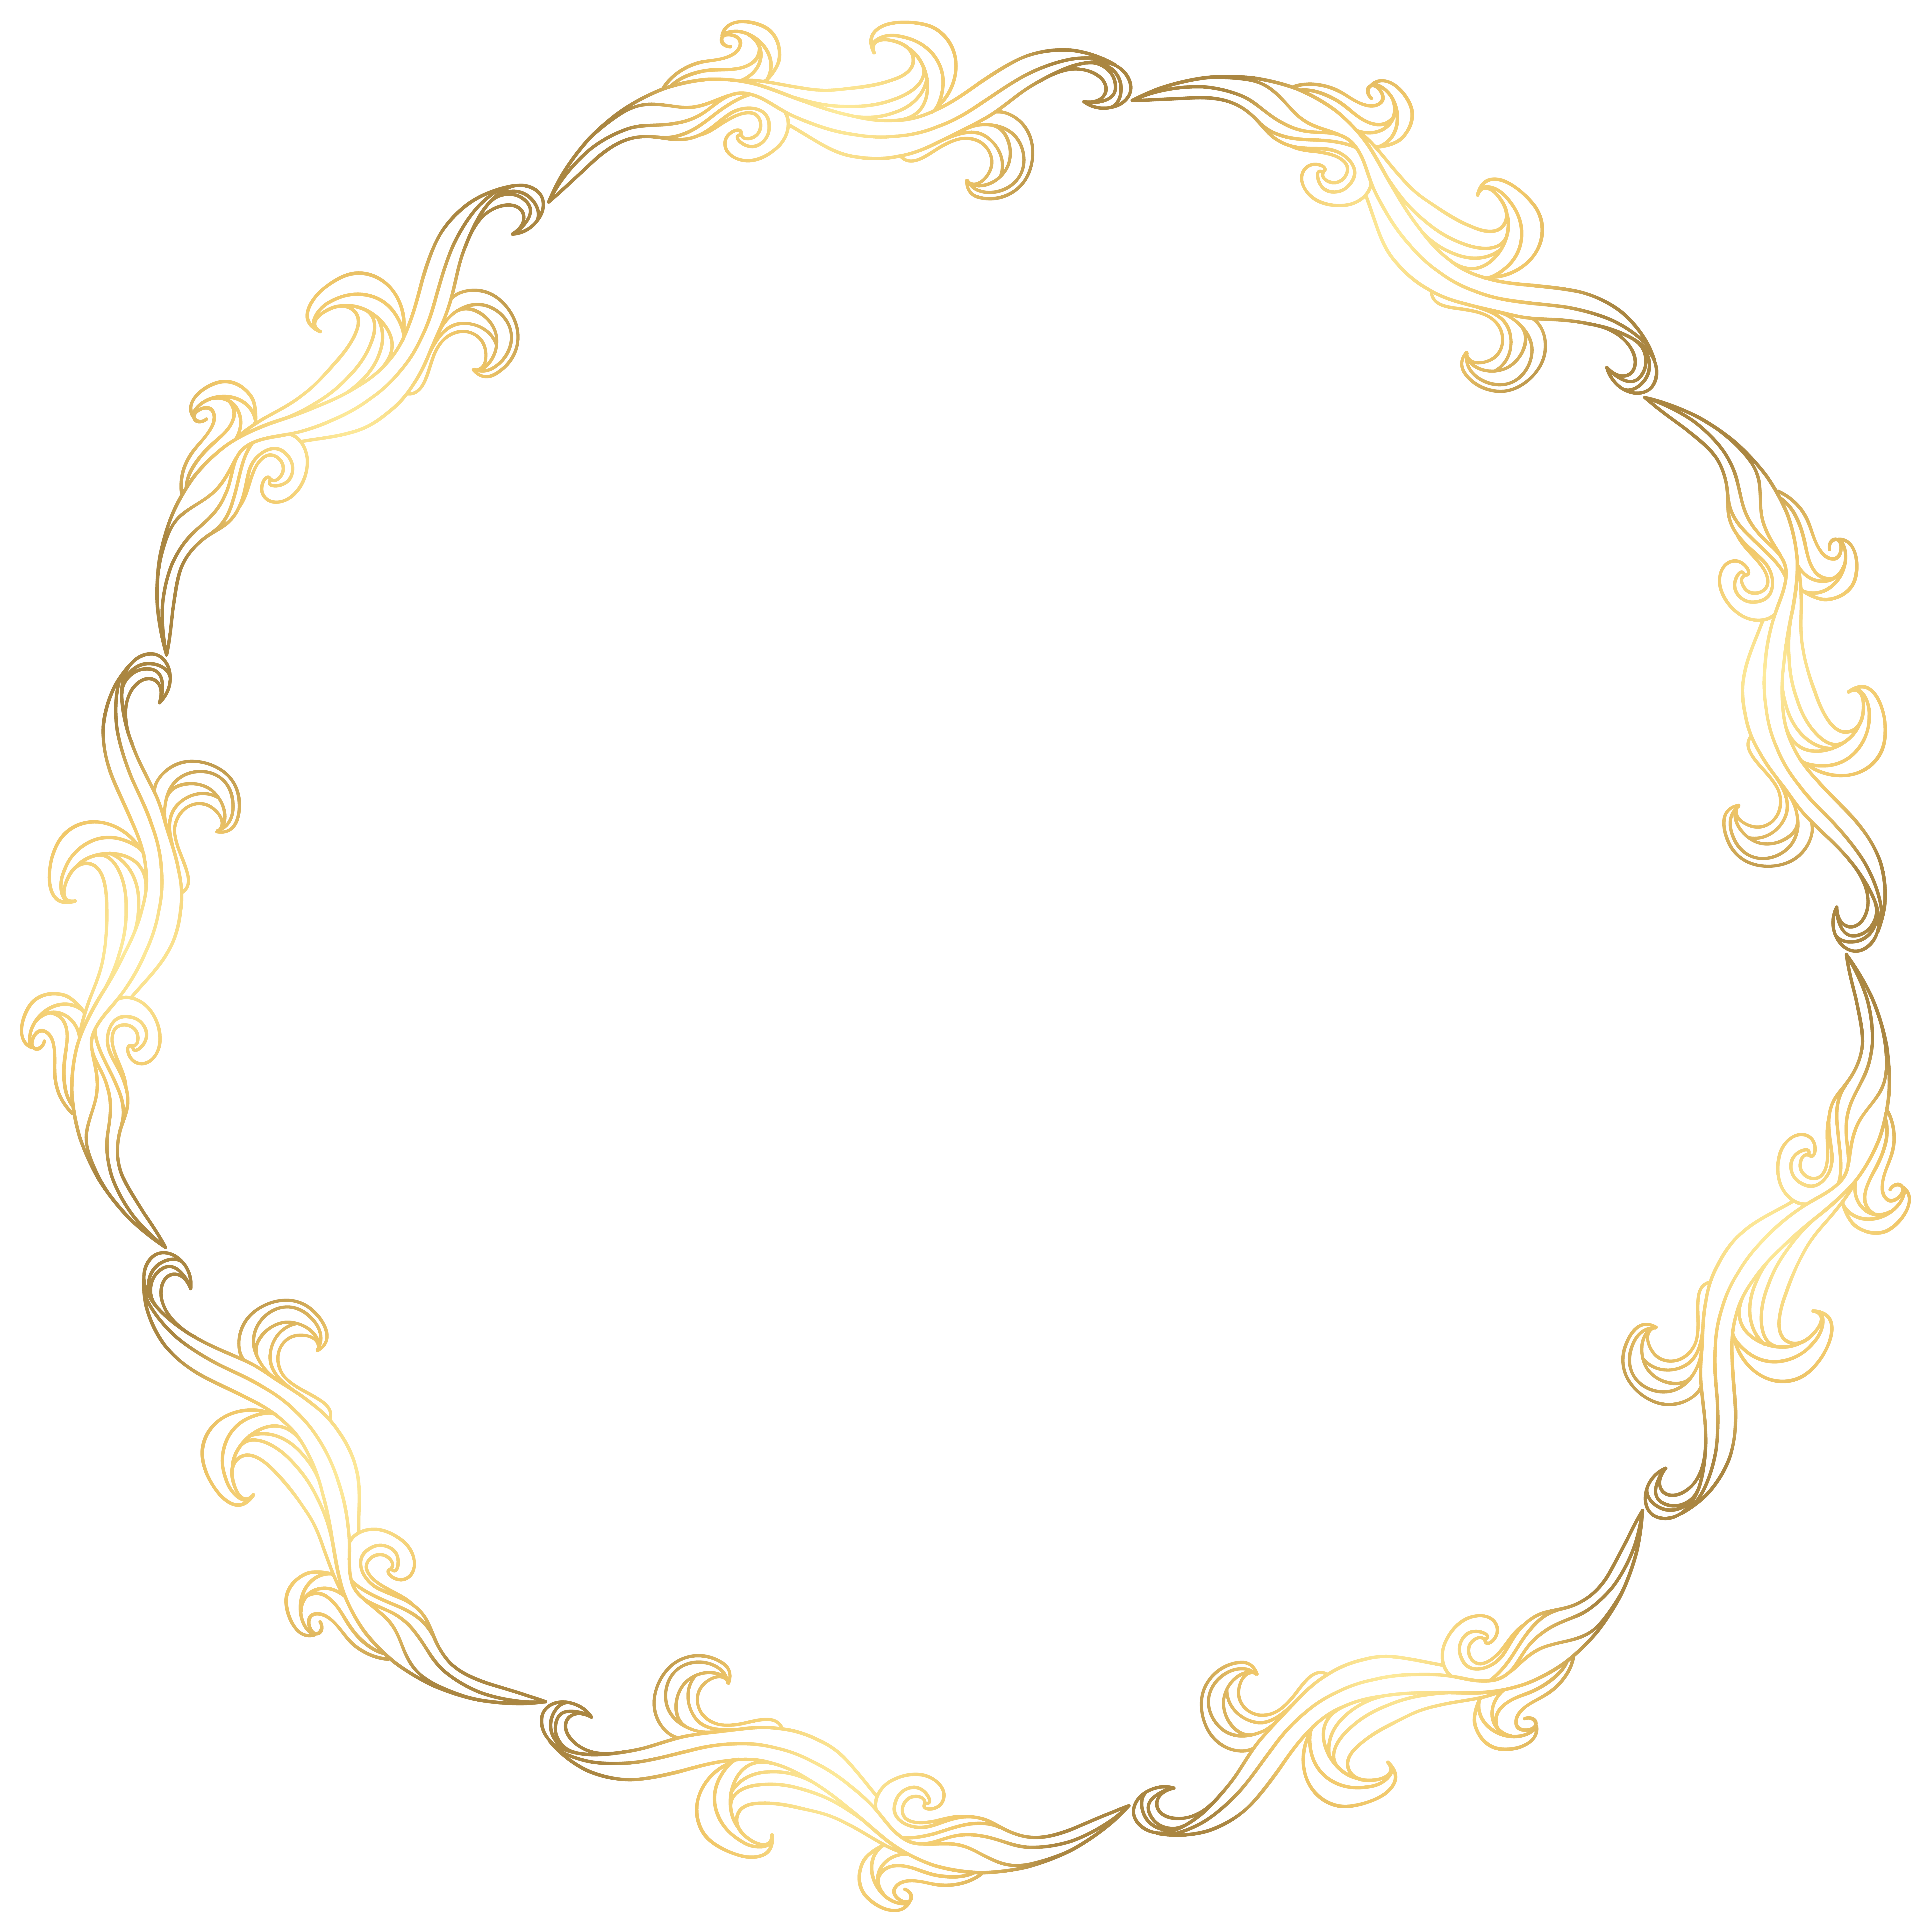 Frame clipart round. Floral gold border png